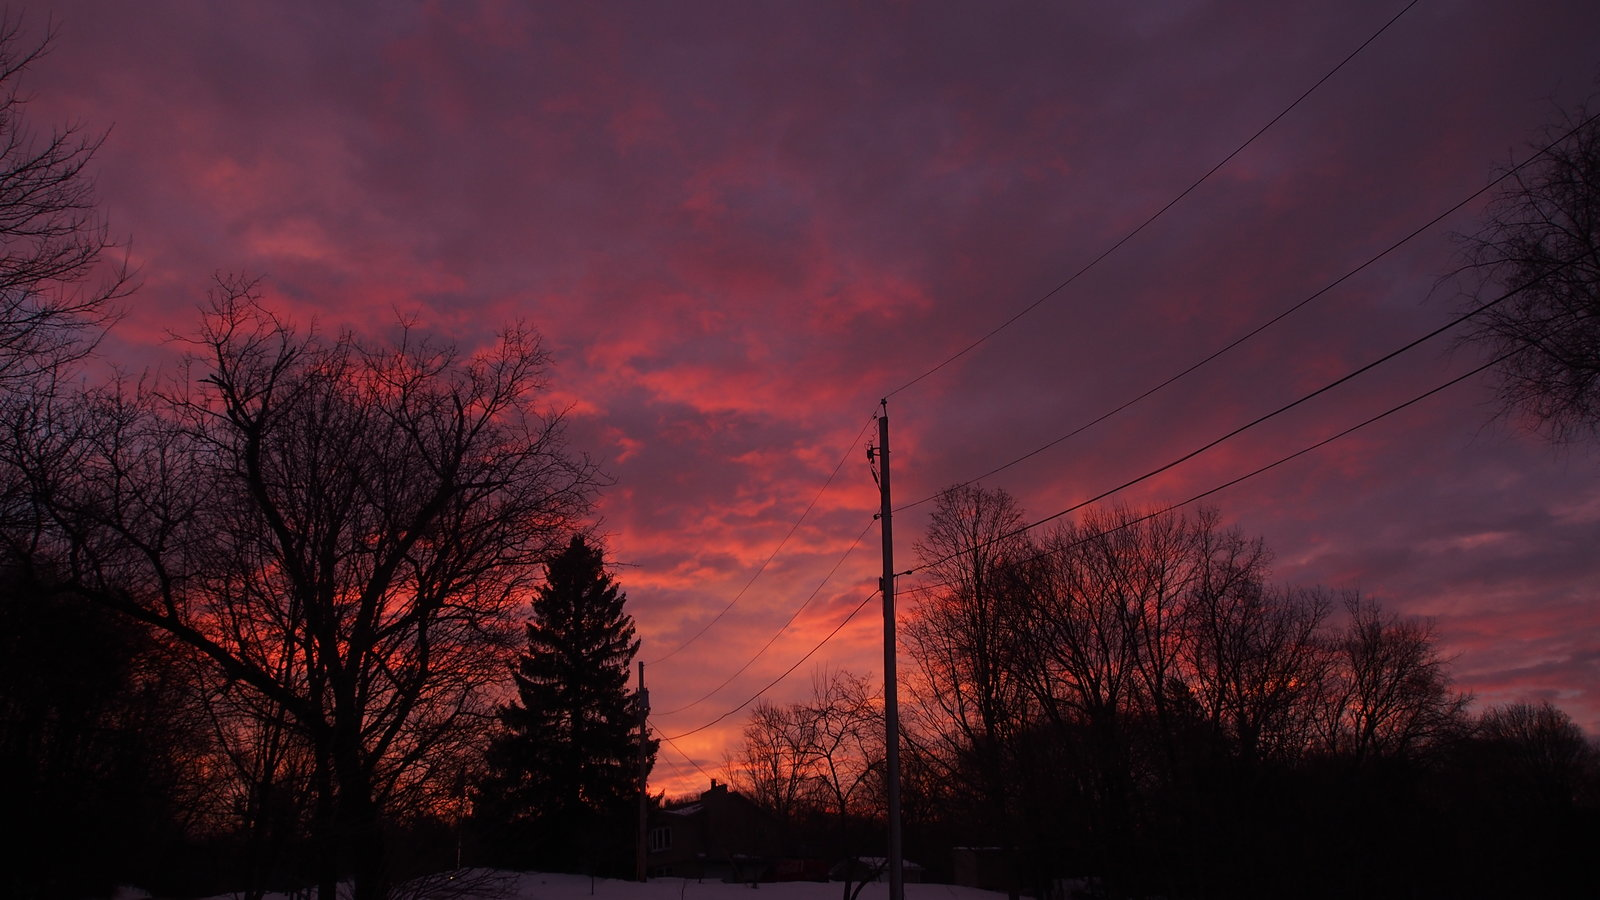 OMD sunrise over Brunswick ny 009.JPG